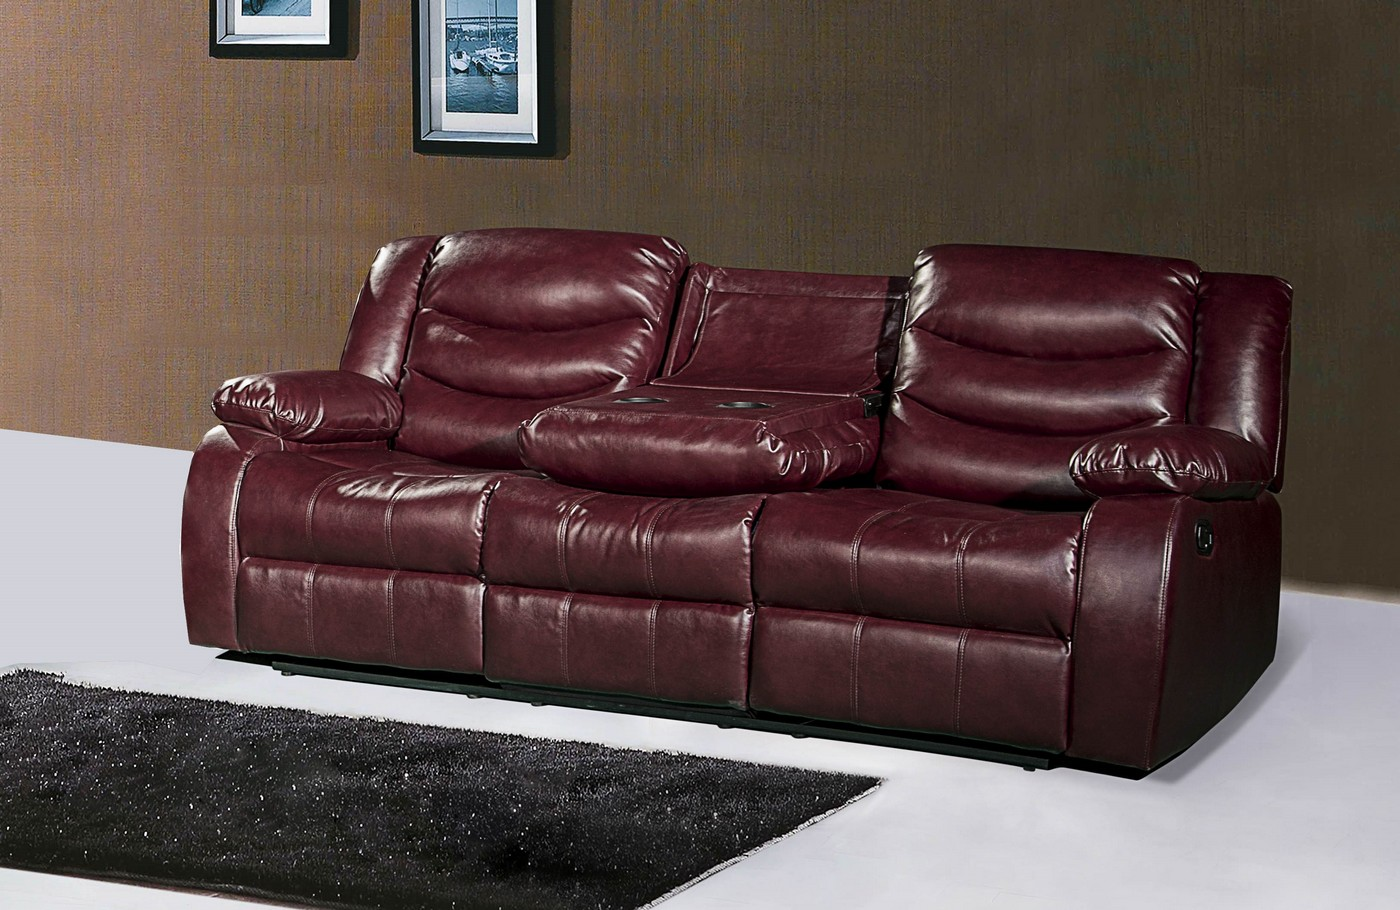 644burg burgundy leather reclining sofa with drop down console Burgundy leather loveseat